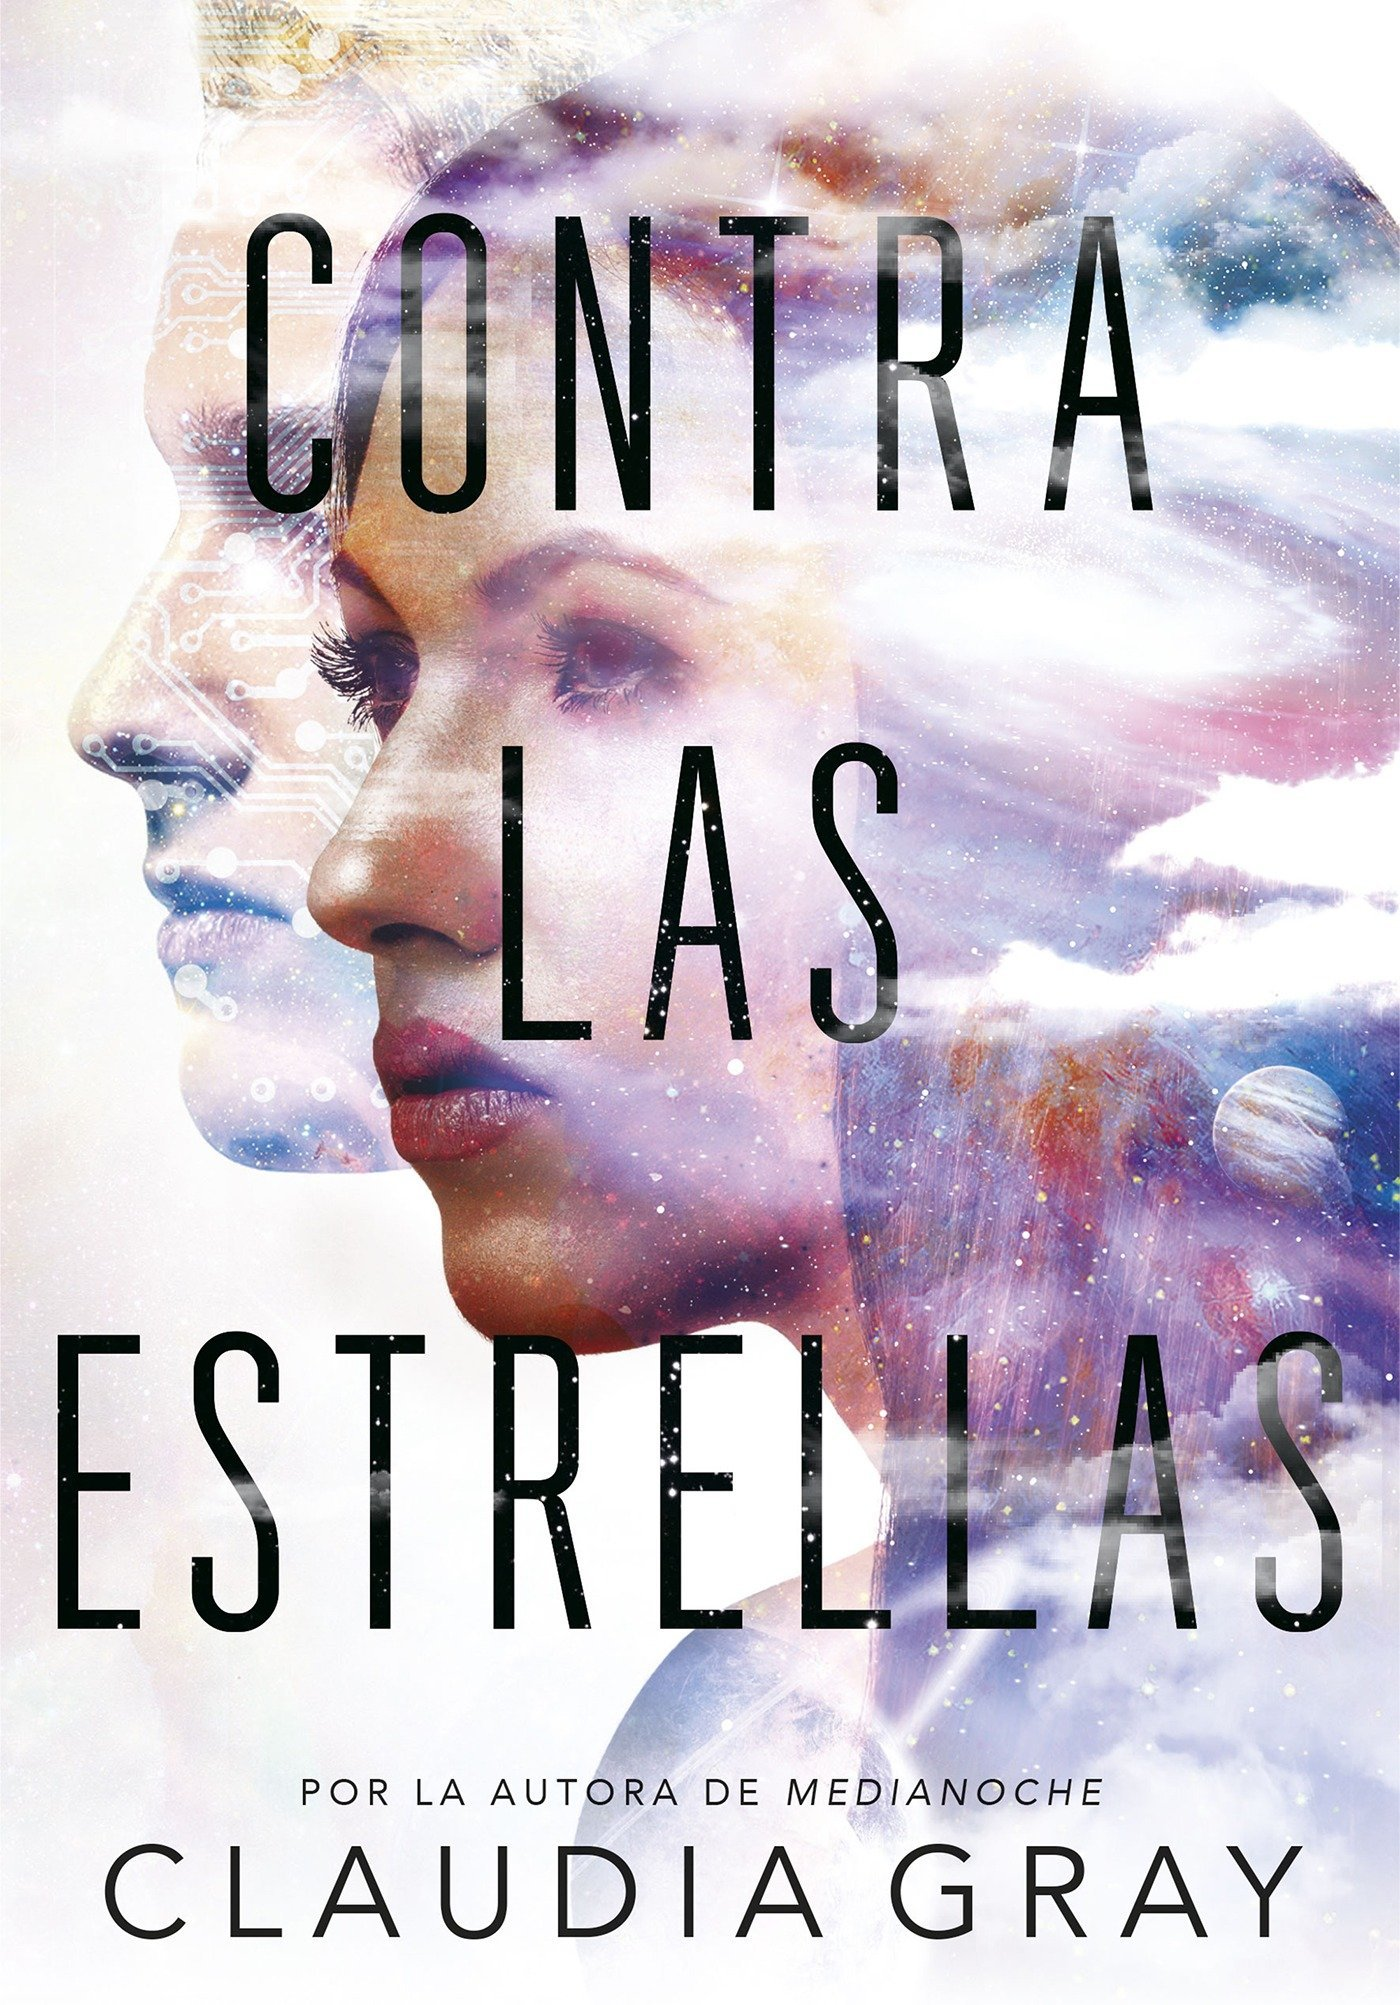 Amazon.com: Contra las estrellas / Defy the Stars (Spanish Edition) (9788490437766): Claudia Gray: Books